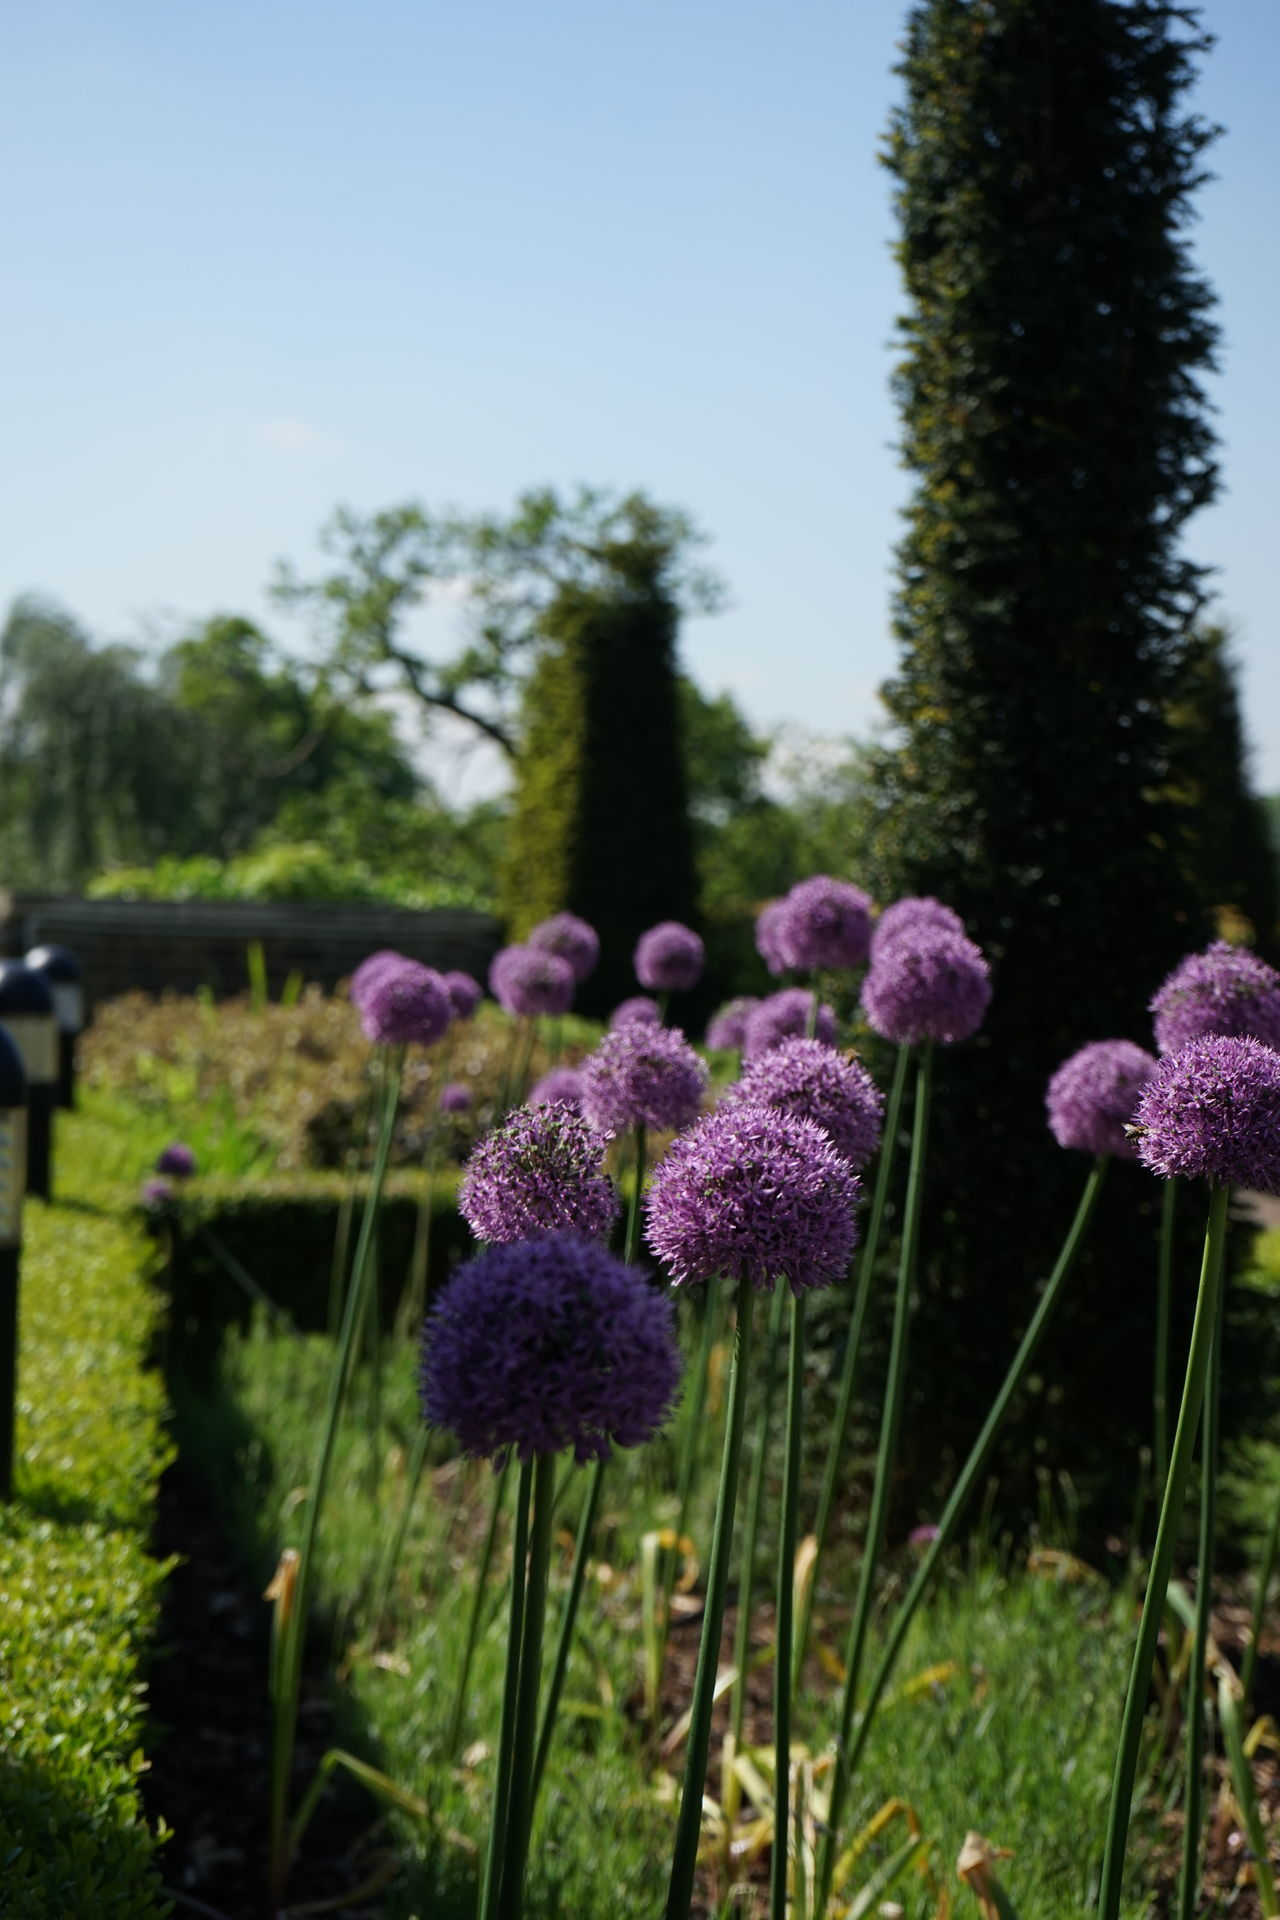 London Lifestyle Hanging Out Greenwich Observatory Garden Park Sunny Sunny Day Taking Photos Relaxing Enjoying Life Blue Sky Walking Around Purple Flower Green Uk London Greenwich Park Greenwich Observatory No Filter No Edit Raw Photography